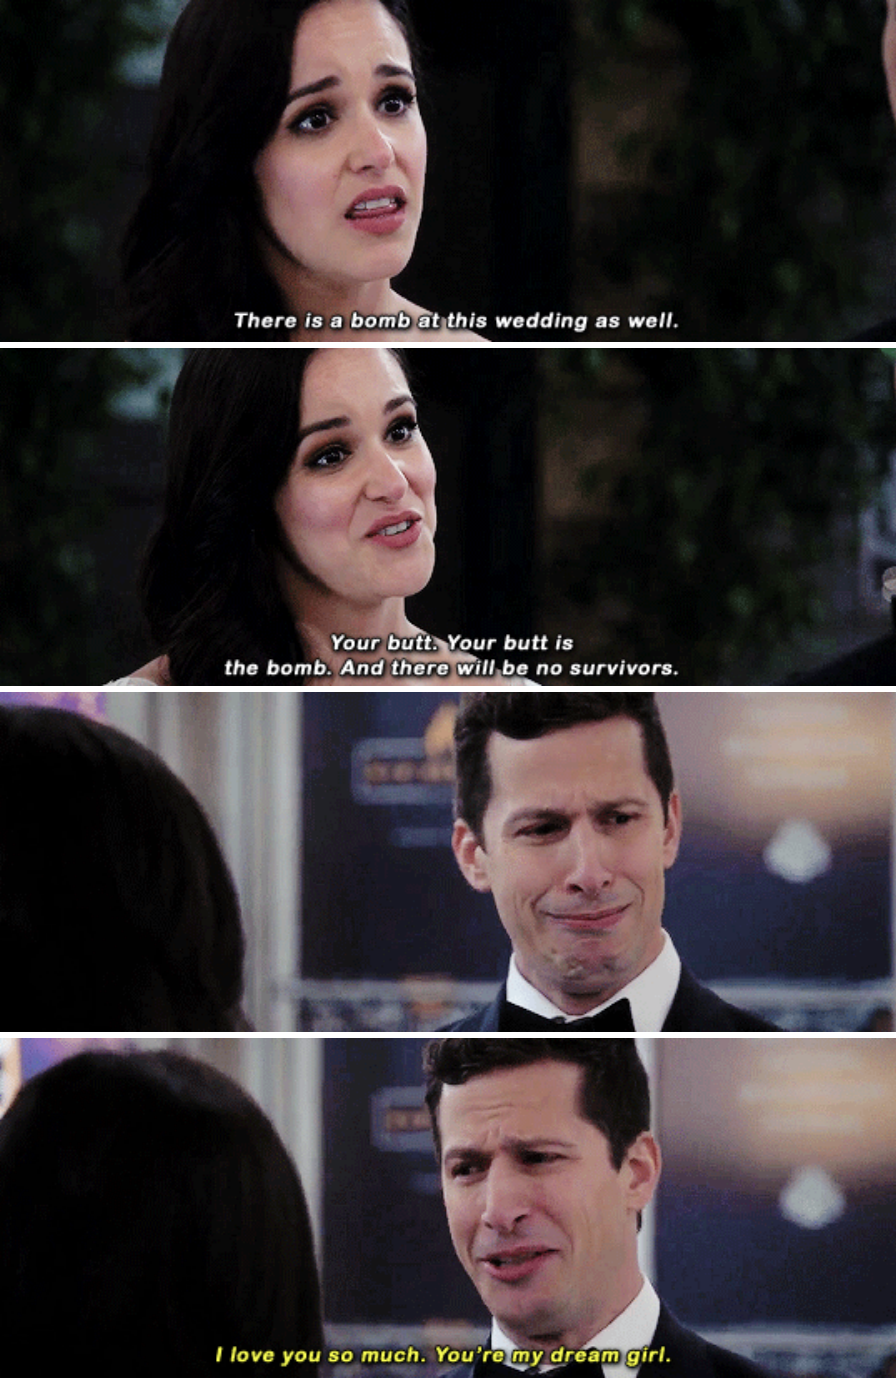 "Jake and Amy from  Brooklyn Nine-Nine  -  ""Peraltiago for sure. They're the definition of opposites attract and they had chemistry in the pilot. They're one of the few TV couples that never broke up and created a bunch of drama. I'm so happy they're married, and I can't wait to see what Season 6 brings them!"" — giav41cc6e5b0"